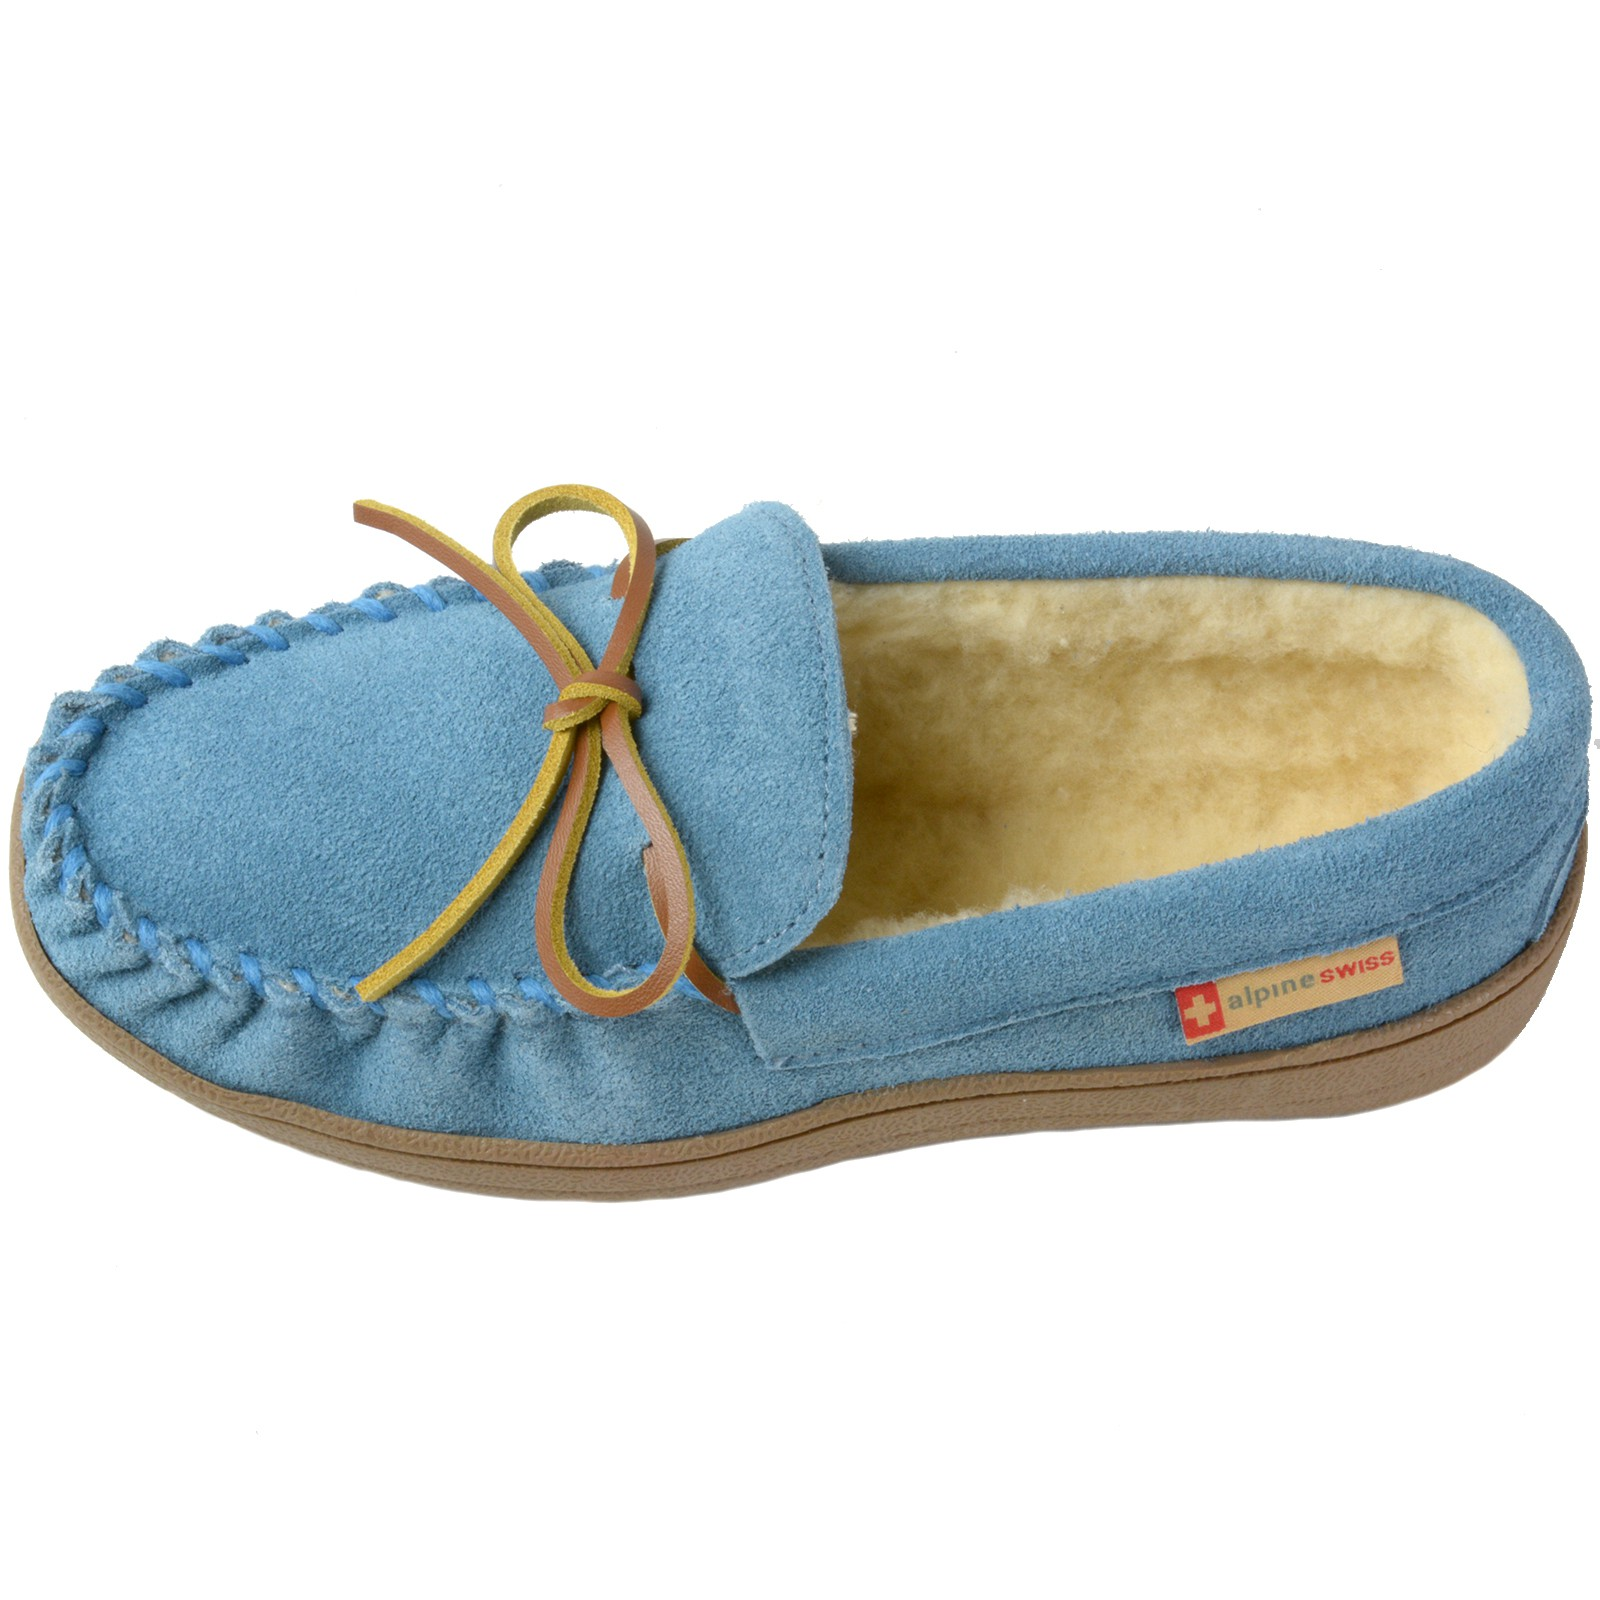 Alpine-Swiss-Sabine-Womens-Suede-Shearling-Moccasin-Slippers-House-Shoes-Slip-On miniature 19